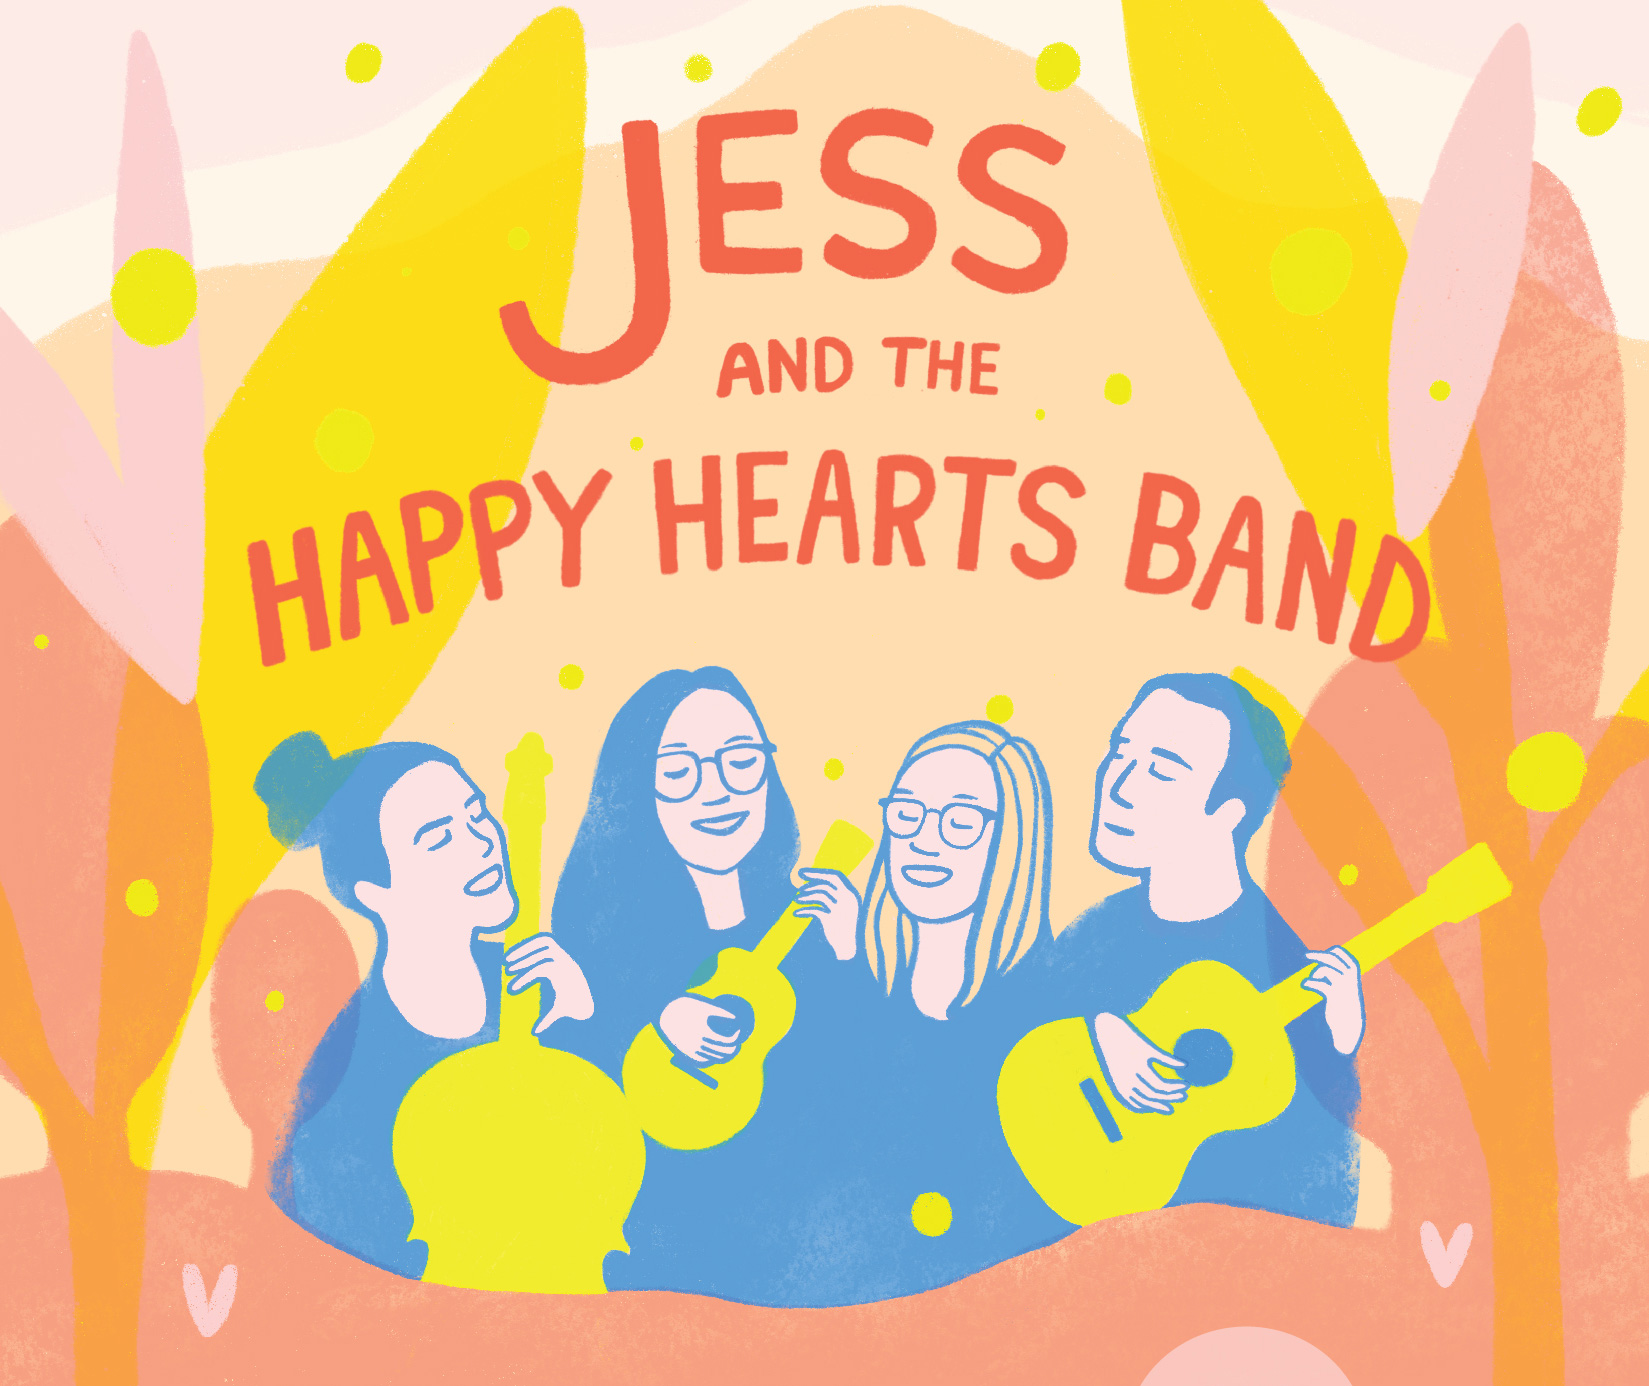 Happy Hearts Band Concert Poster